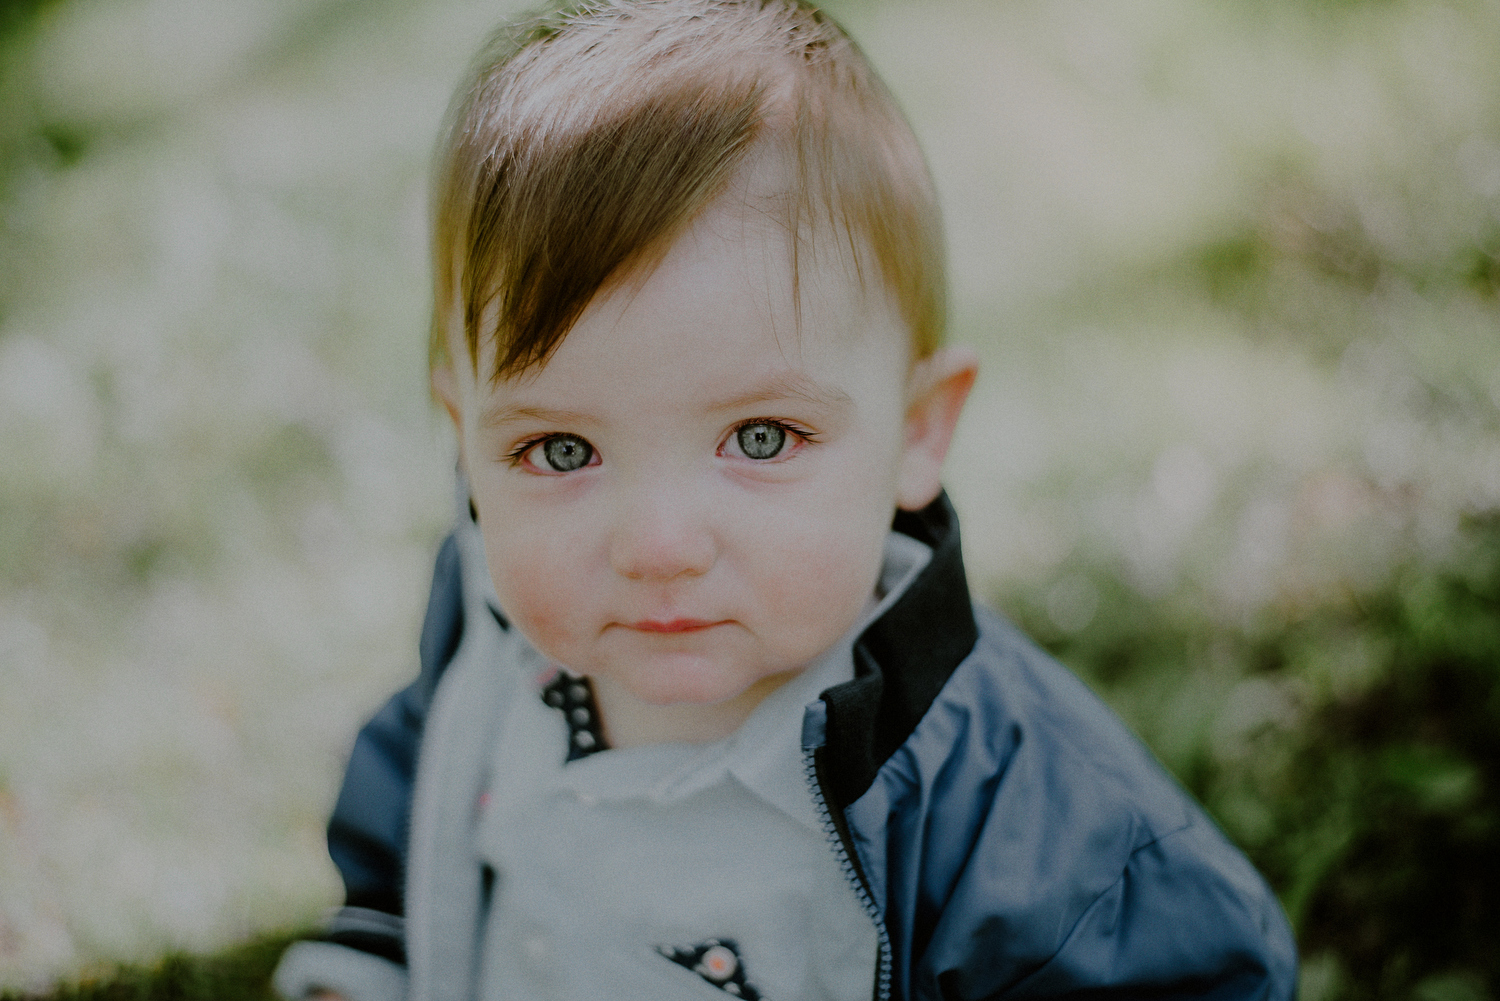 blue eyed infant looking into camera